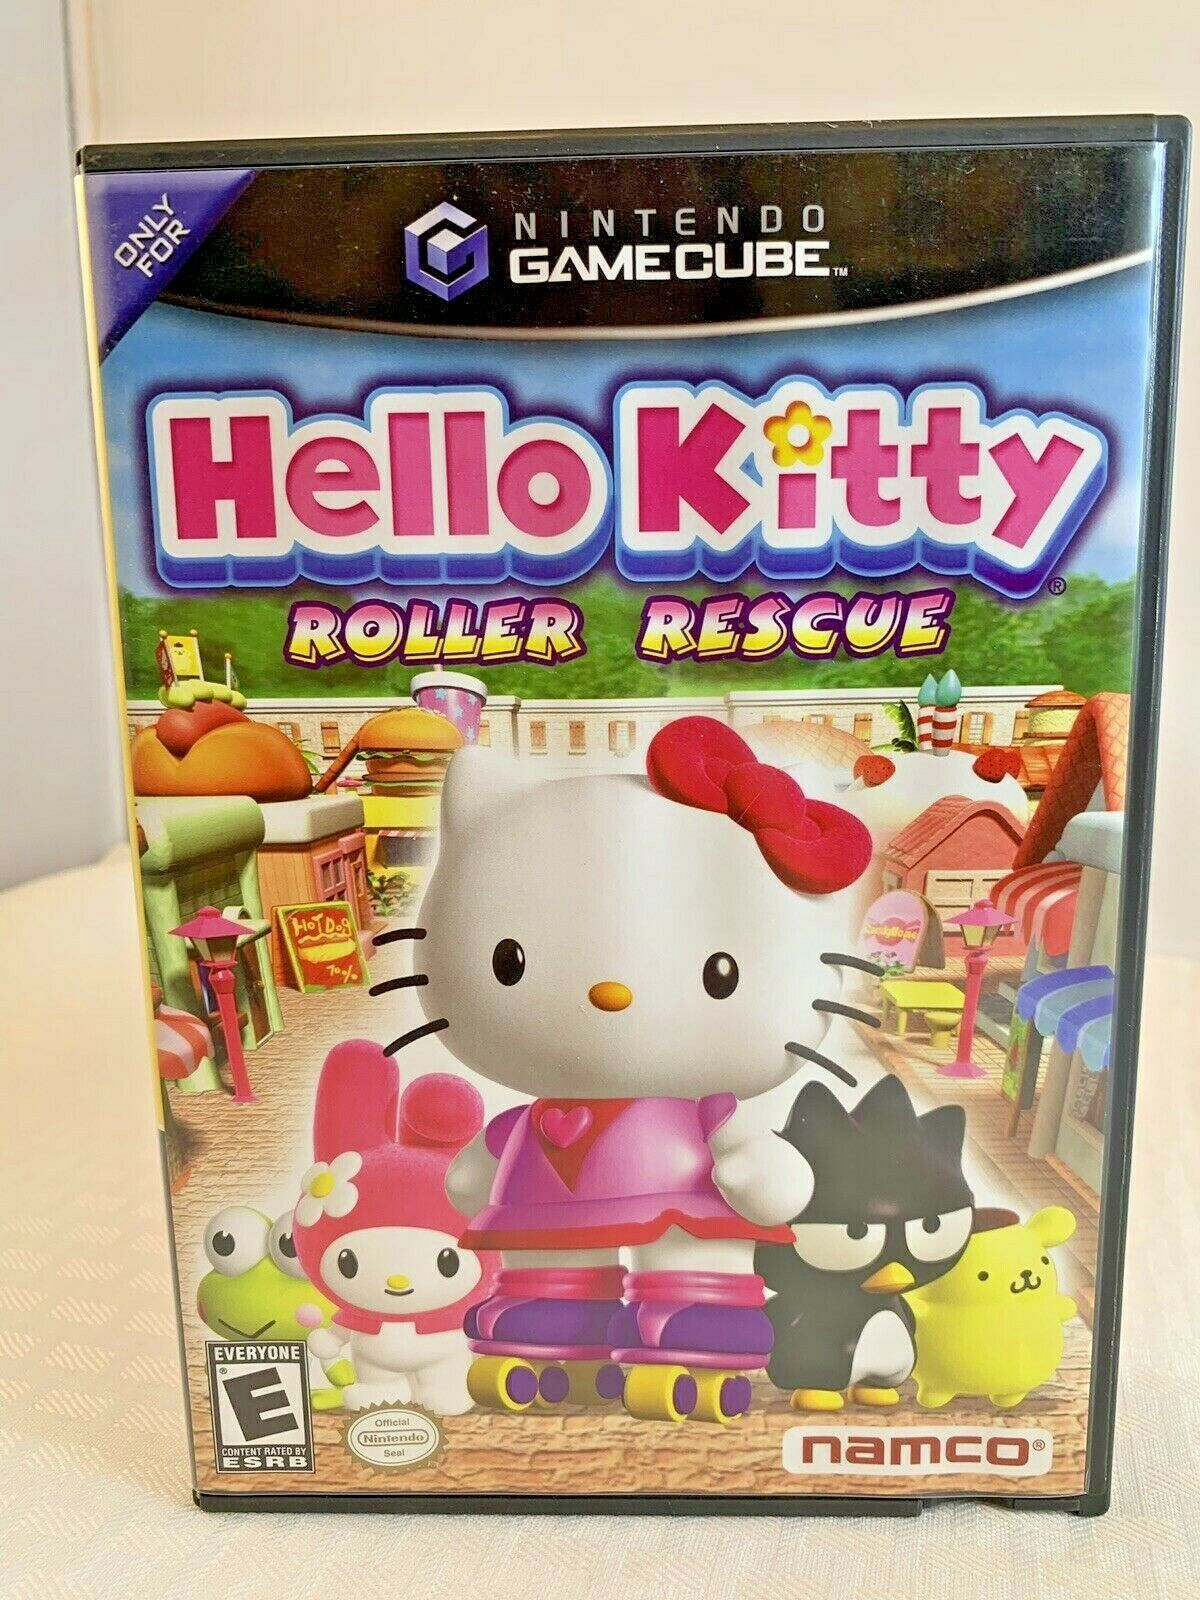 Hello Kitty: Roller Rescue (Nintendo GameCube, 2005) image 1